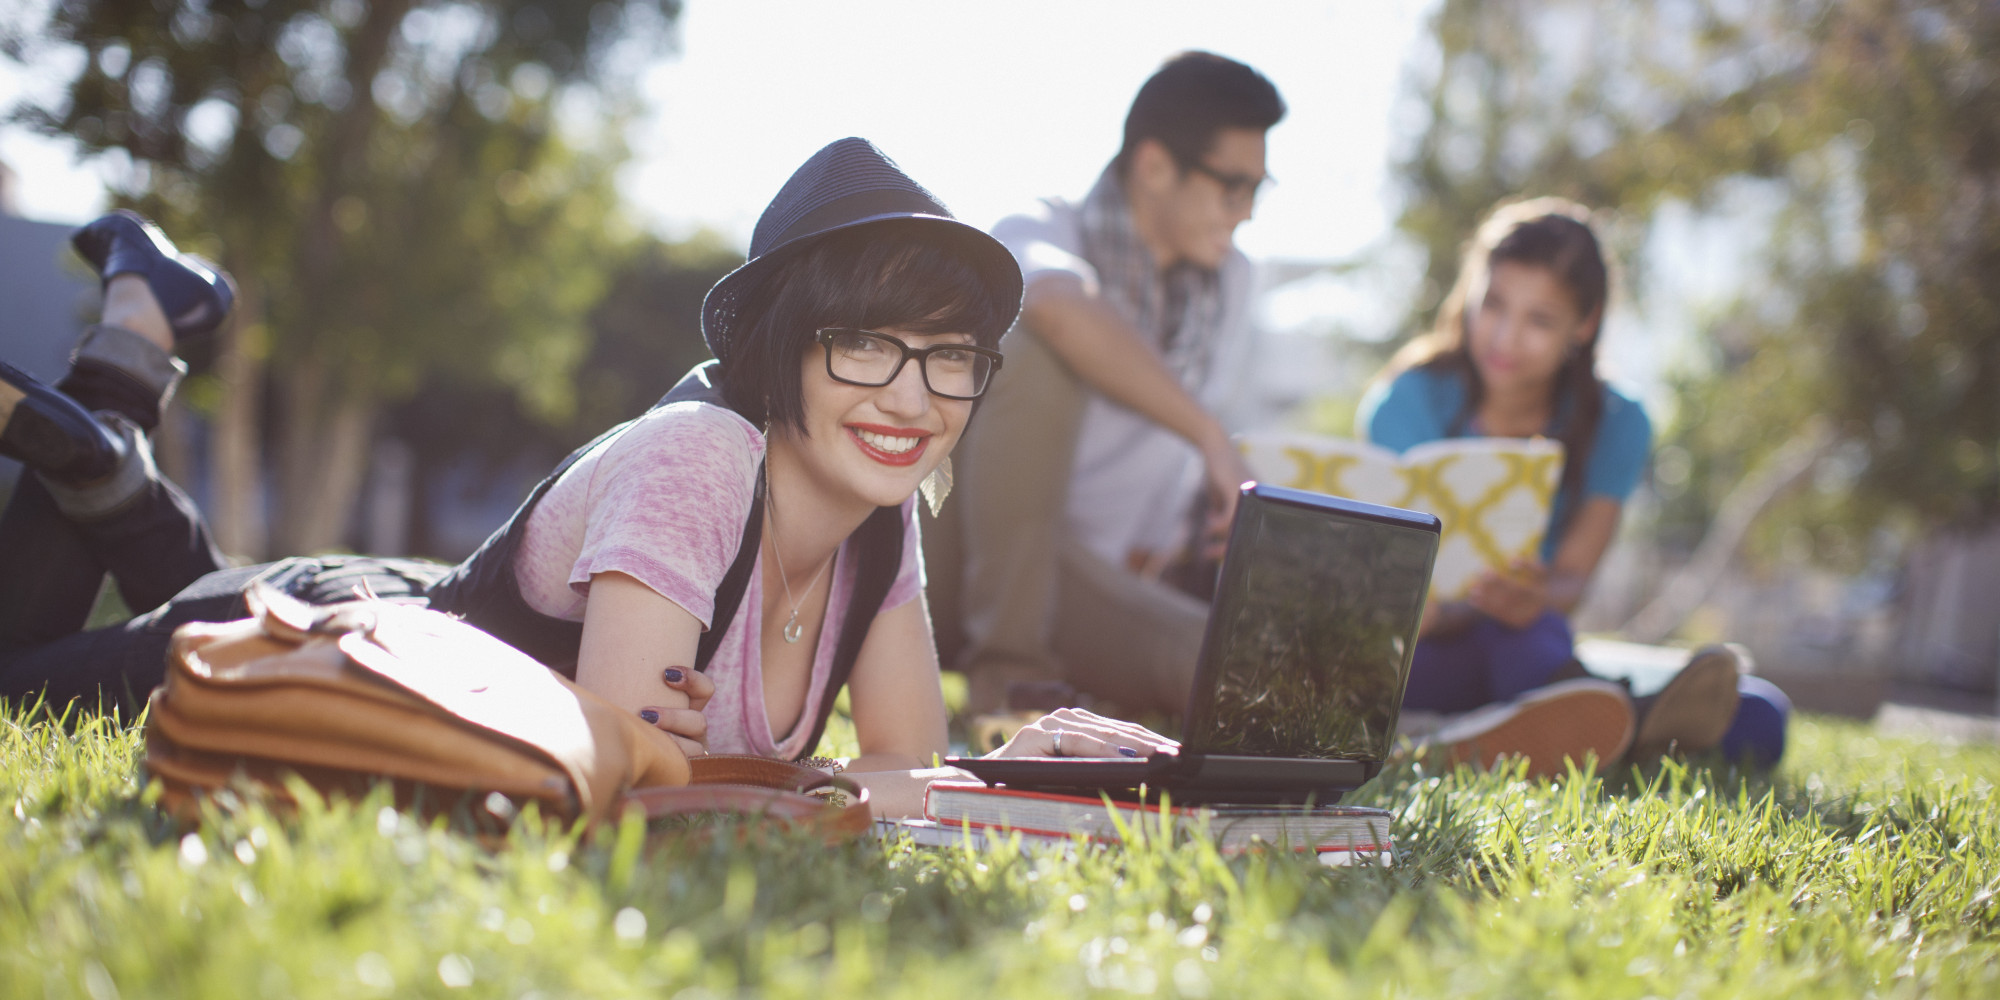 Student using laptop in grass